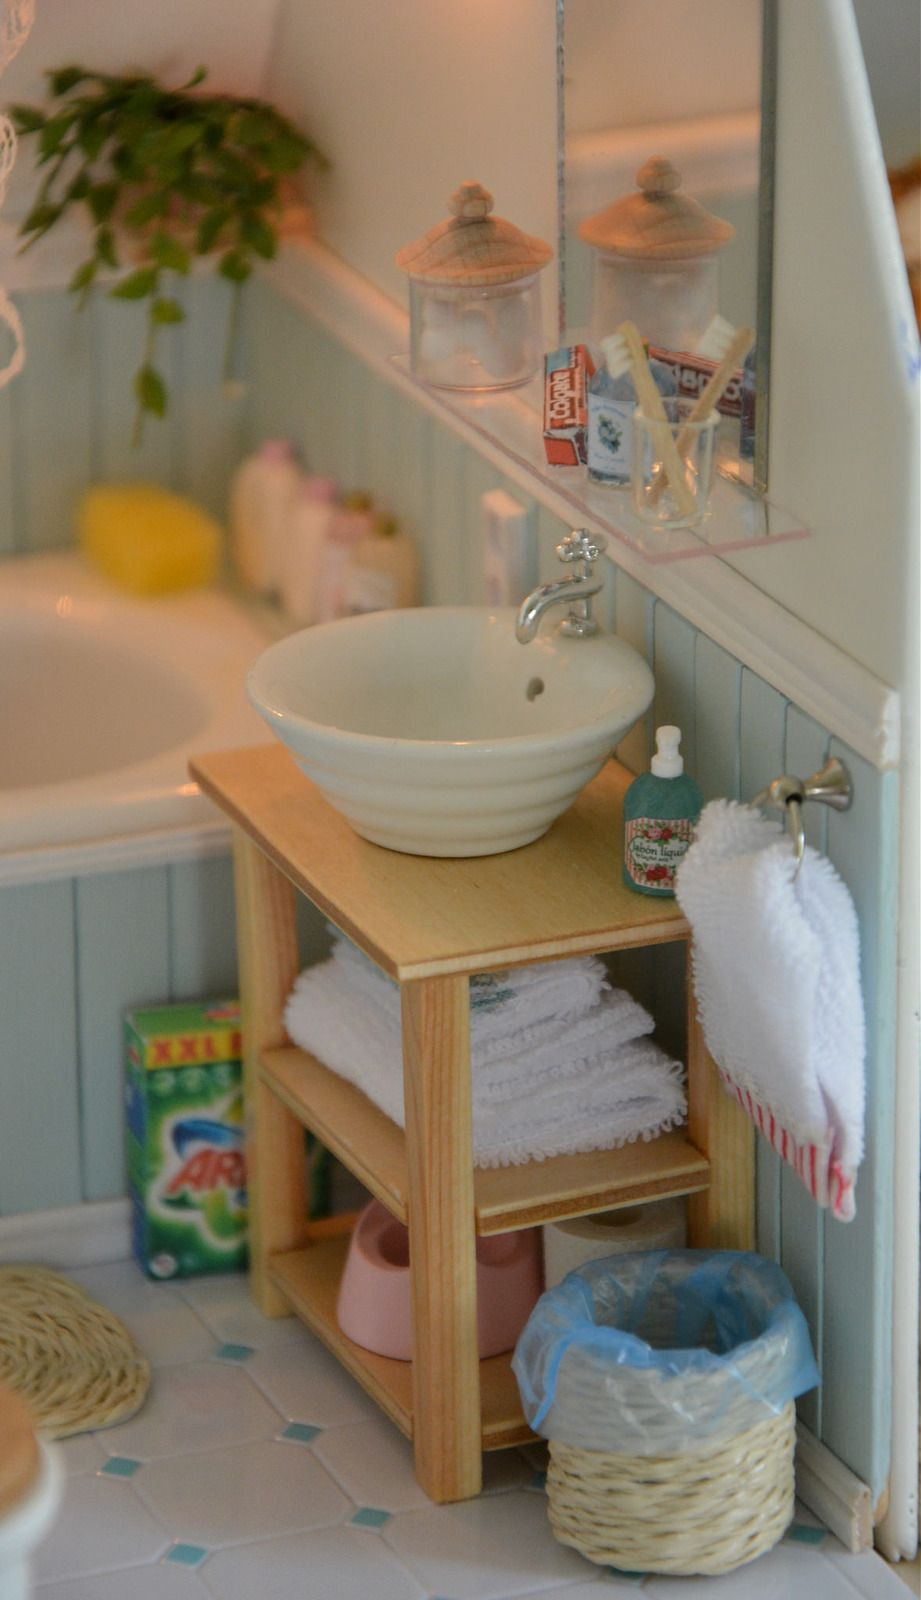 The bathroom in my dollhouse #dollfurniture